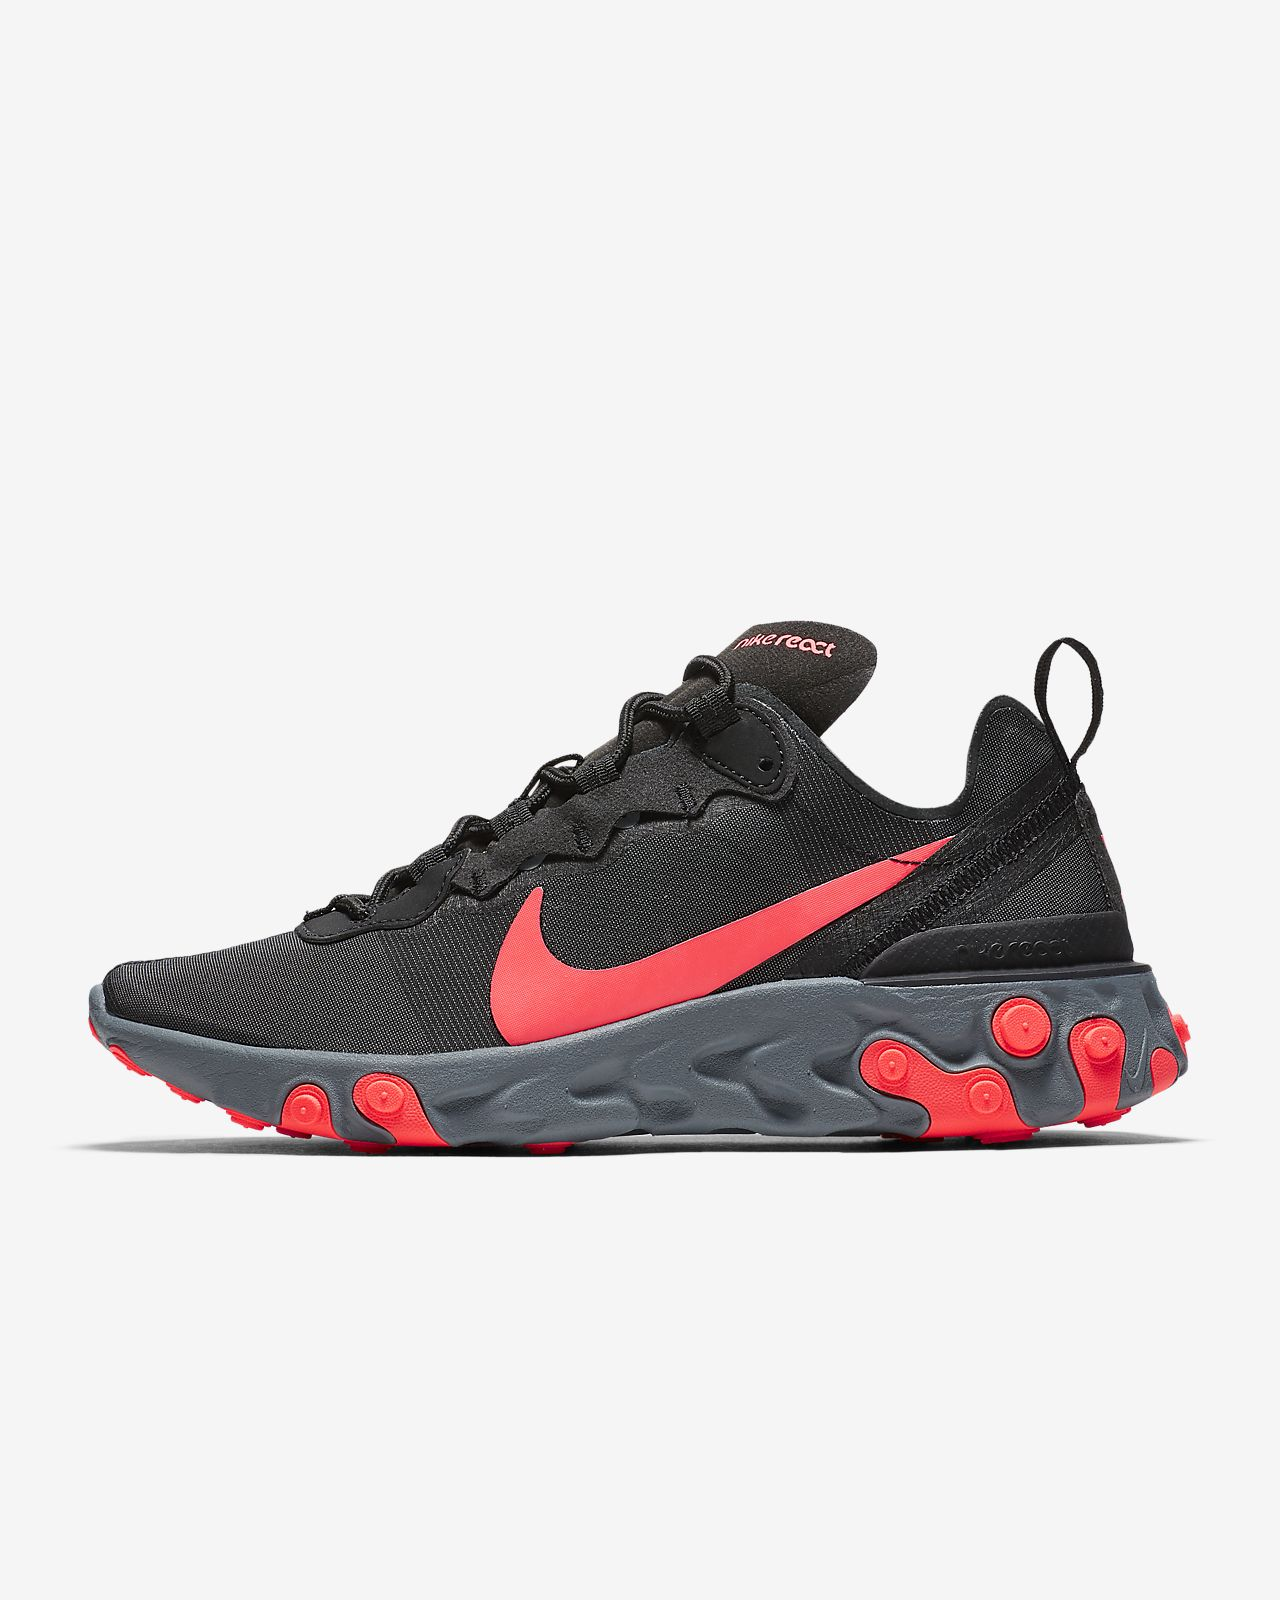 e9eb5e8bceee Nike React Element 55 Women s Shoe. Nike.com MA